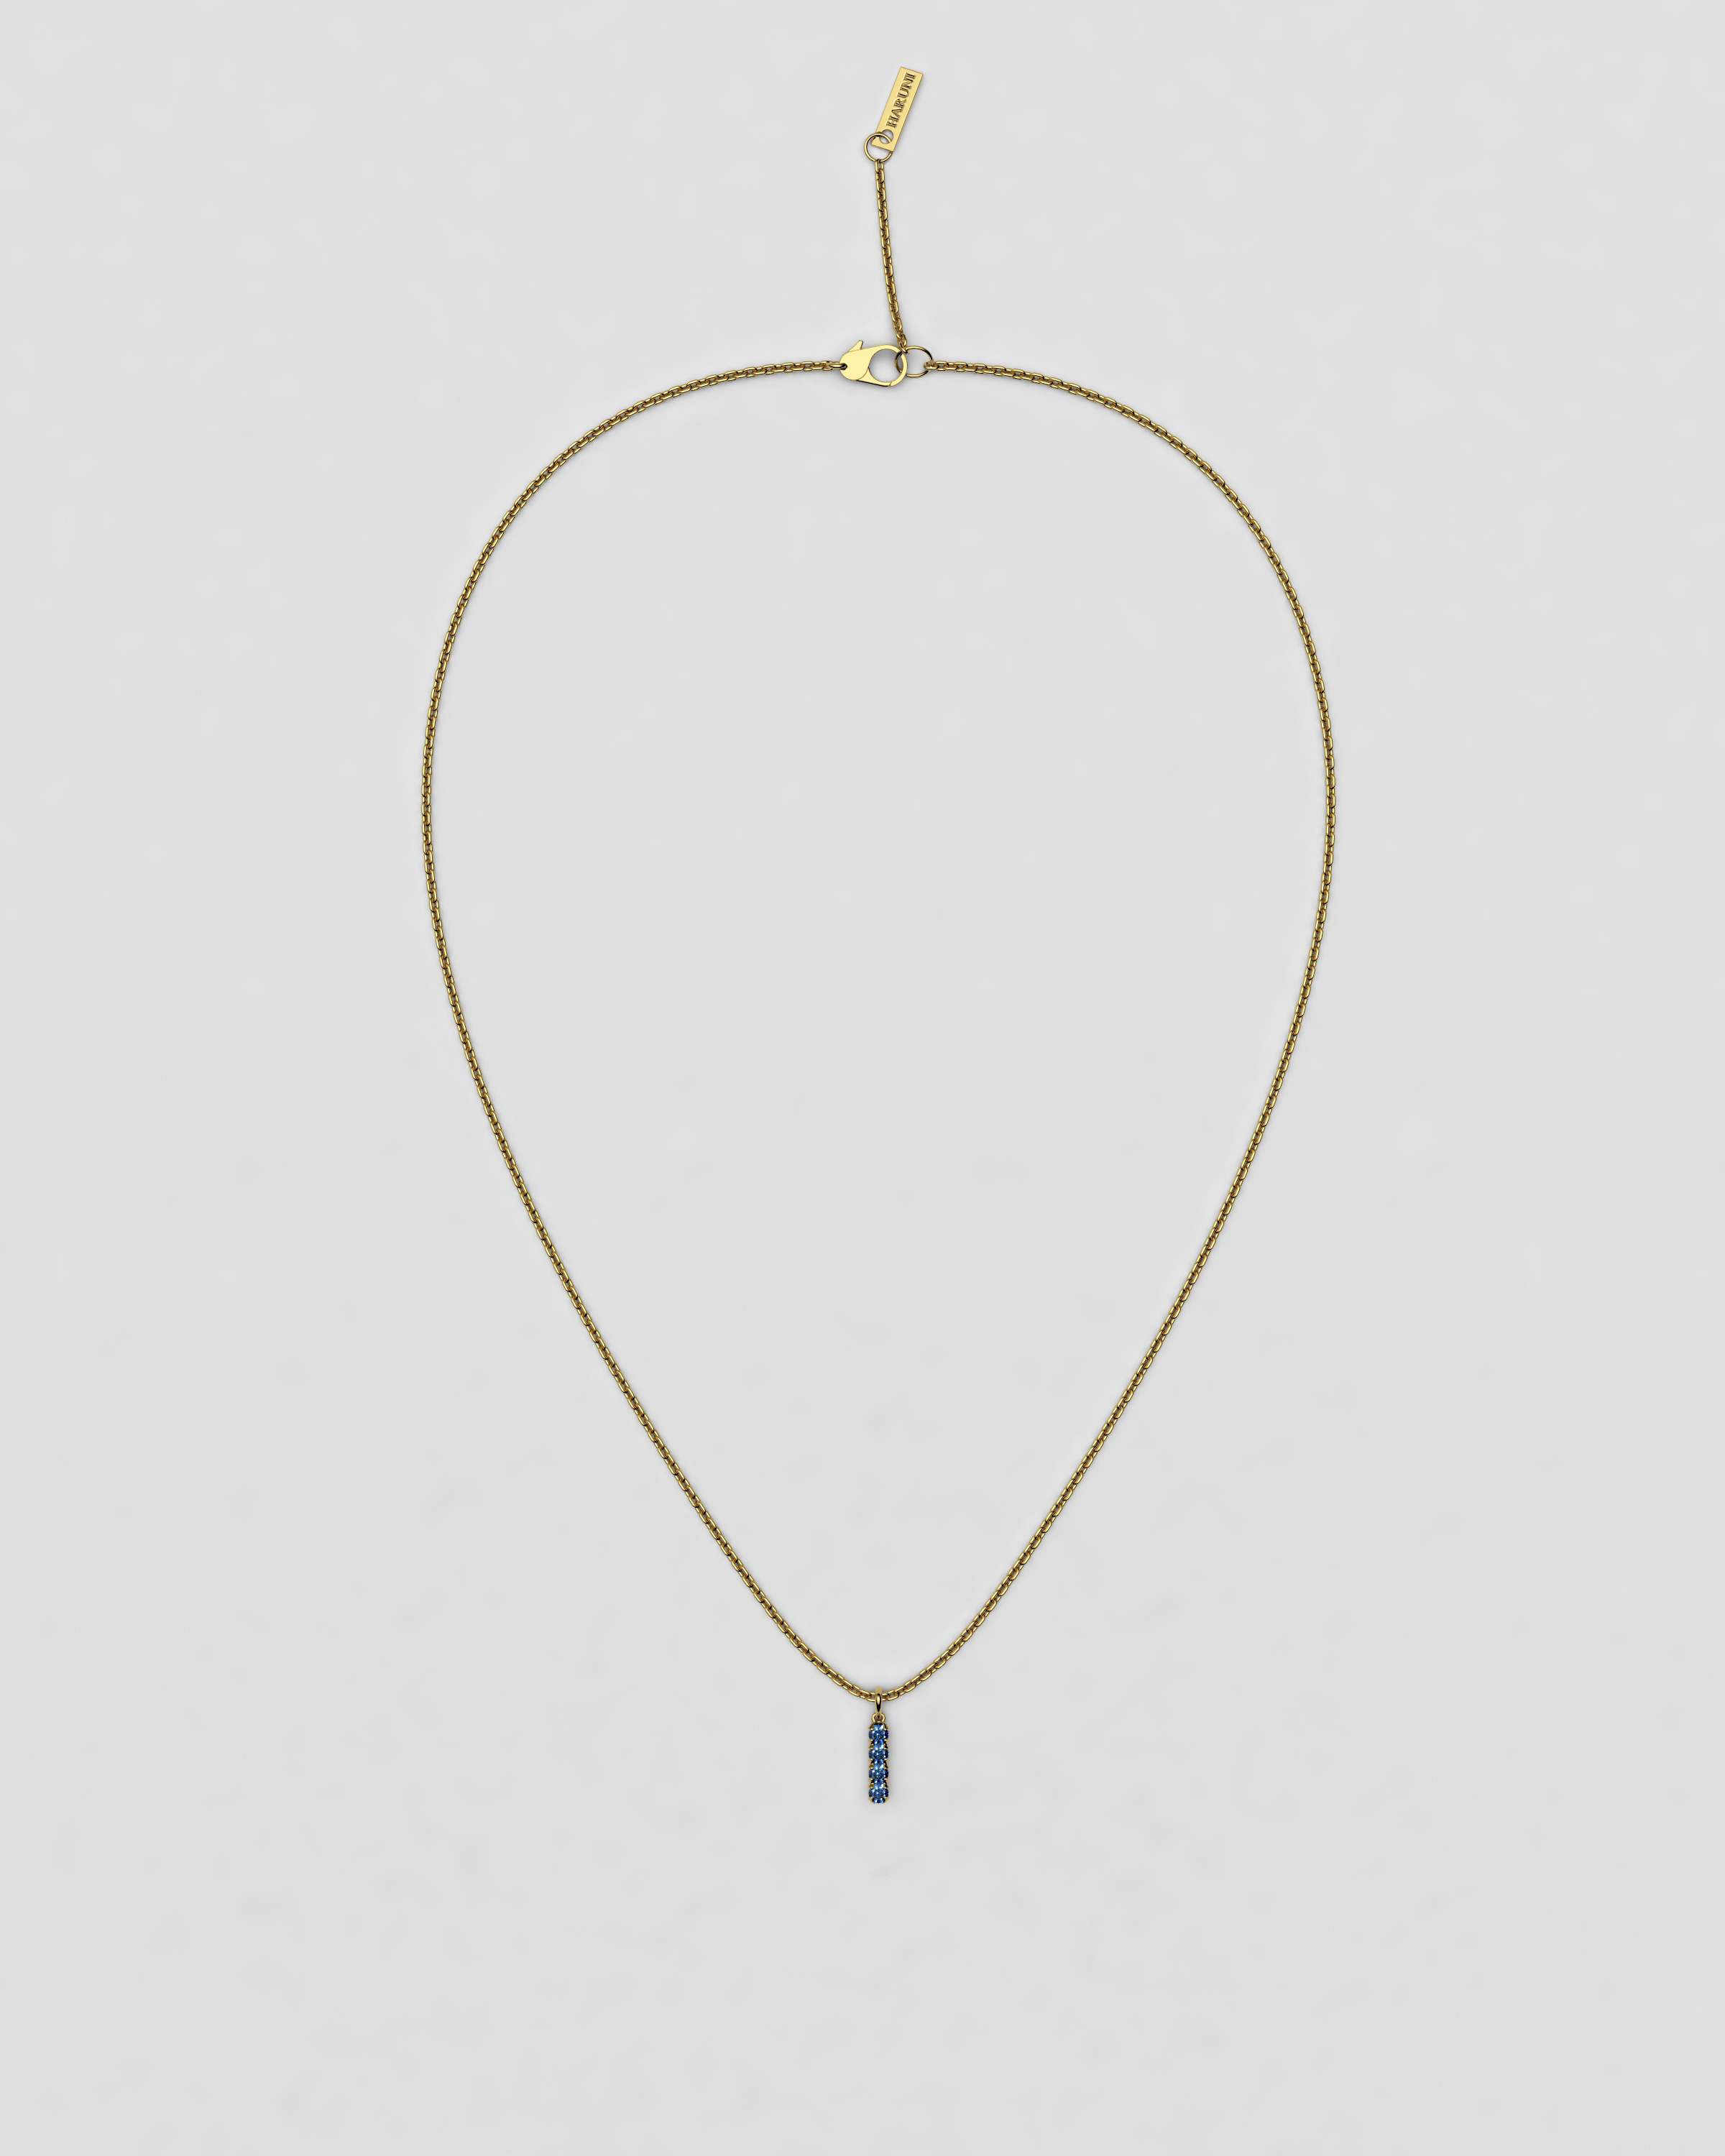 blossom necklace and short pendant  - cornflower blue sapphire and 18k yellow gold